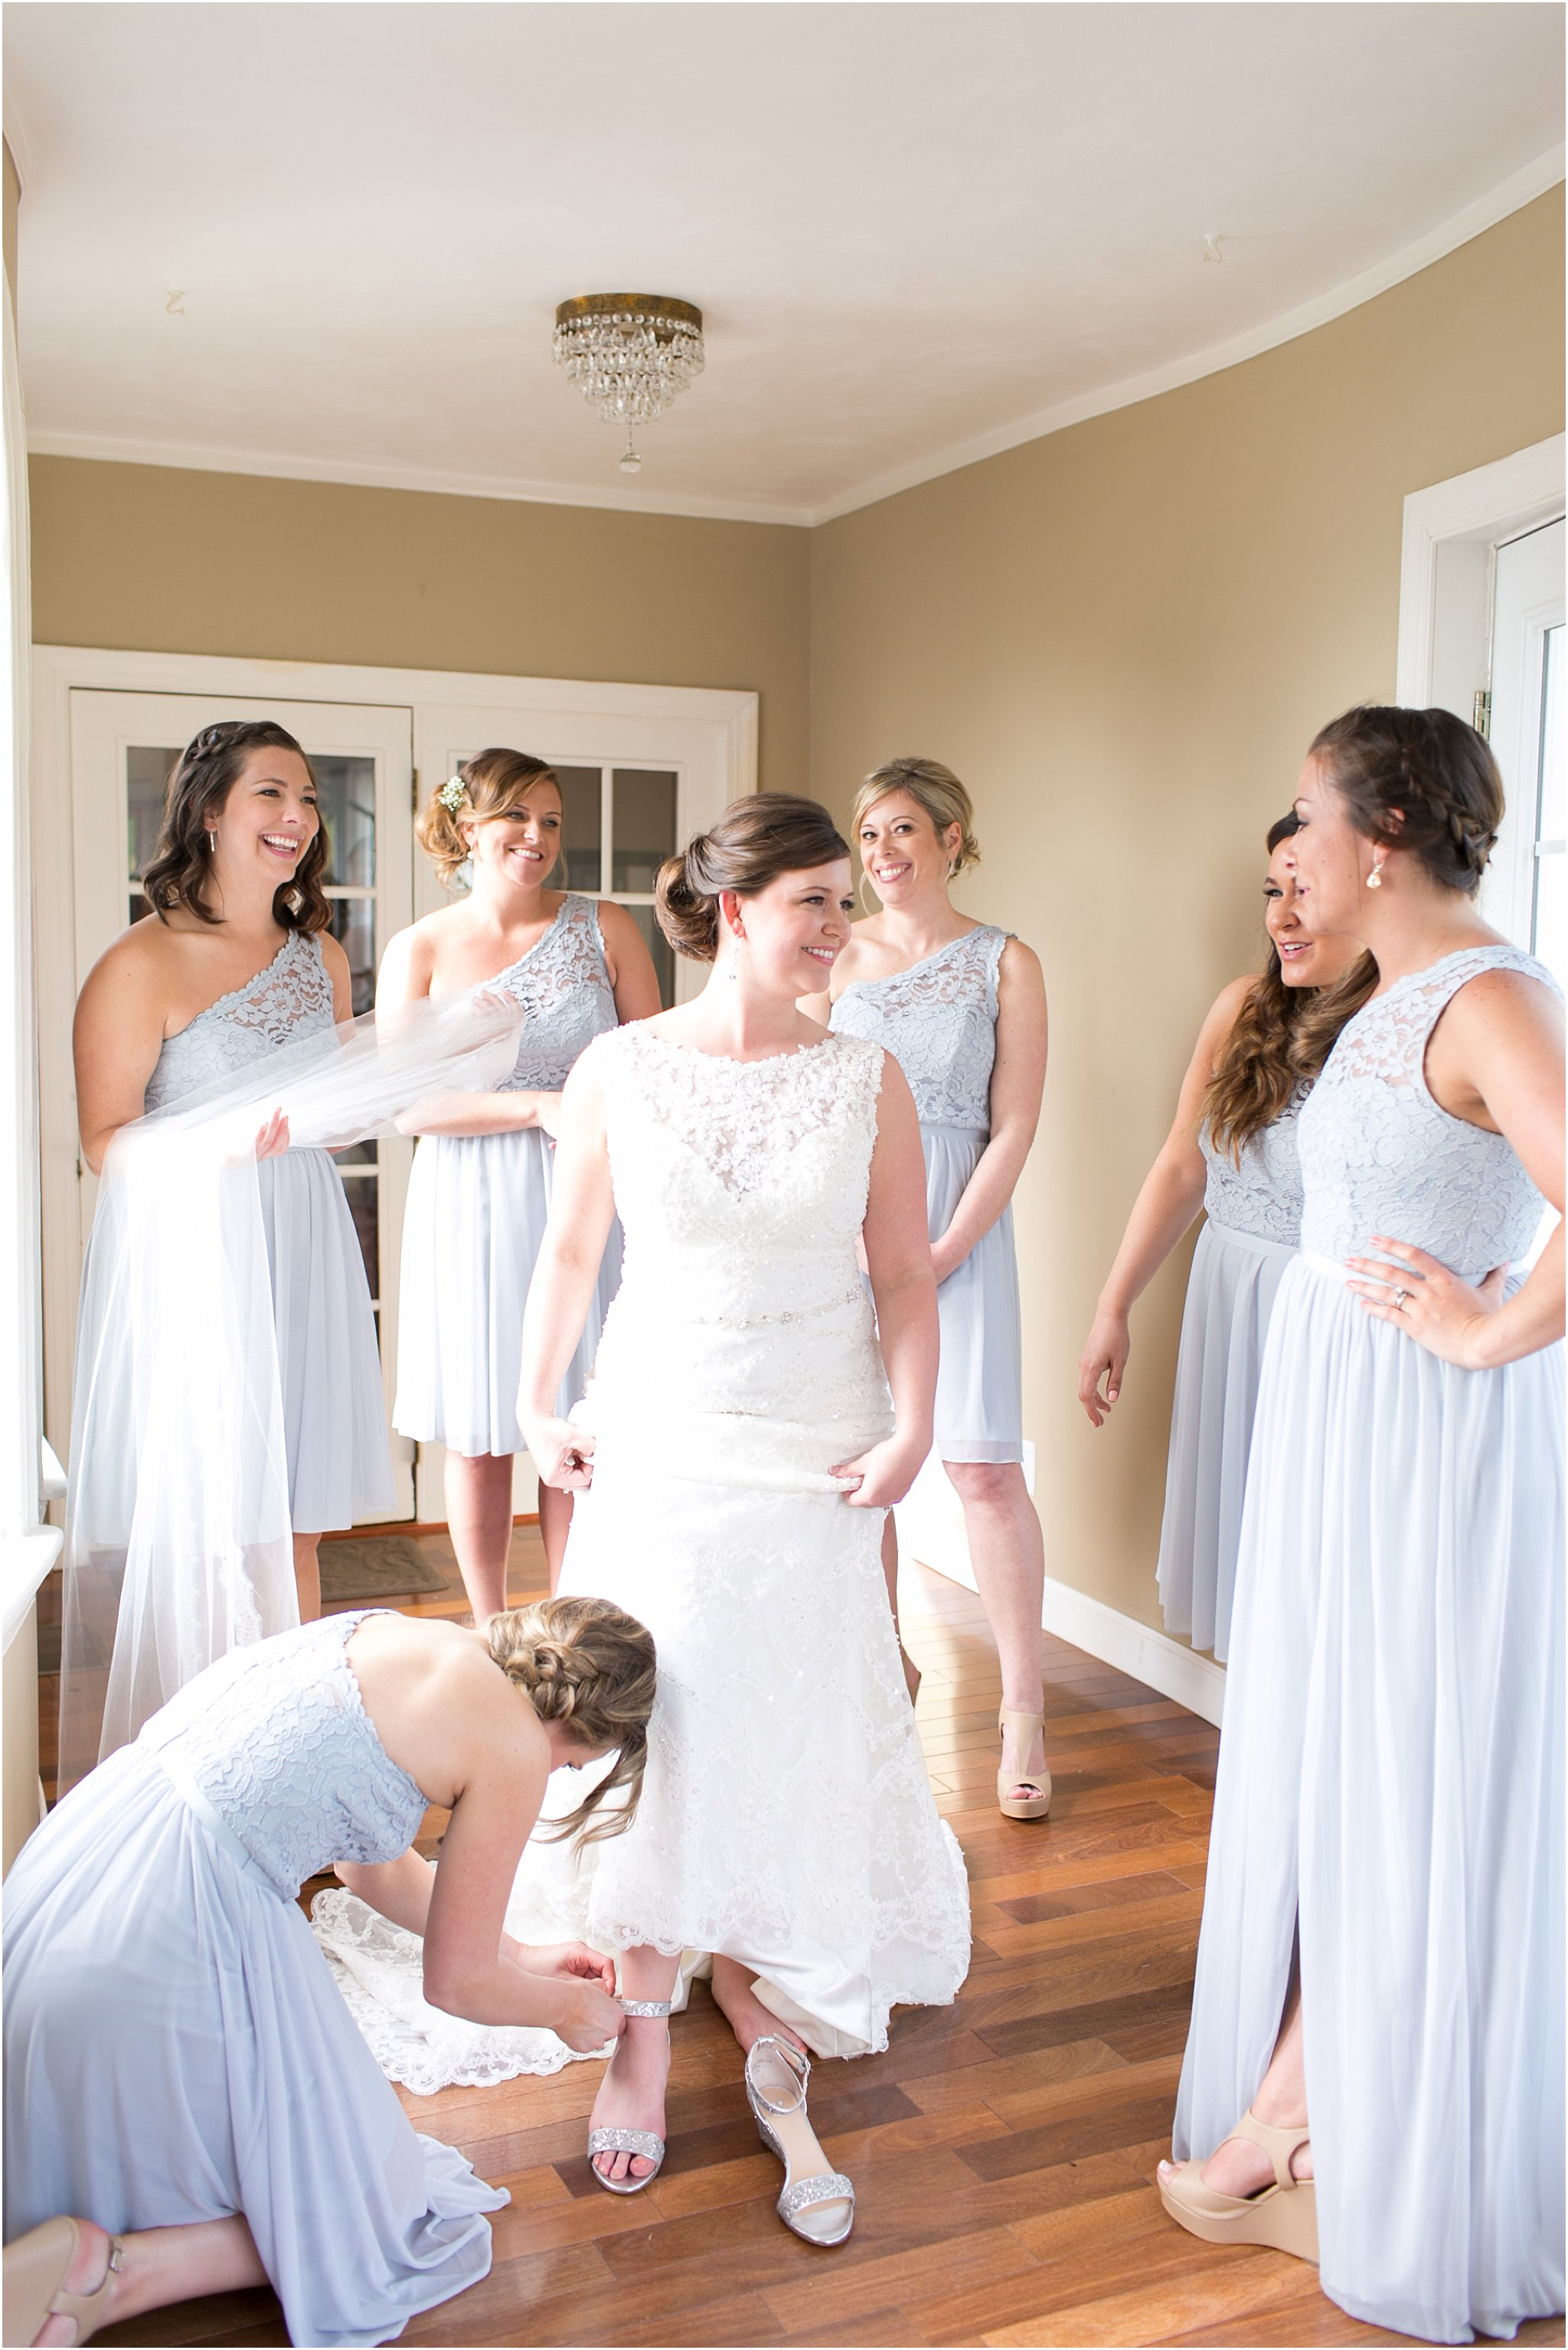 jessica_ryan_photography_wedding_photographs_must_haves_bride_top_wedding_photographs_virginia_wedding_photographer_2021